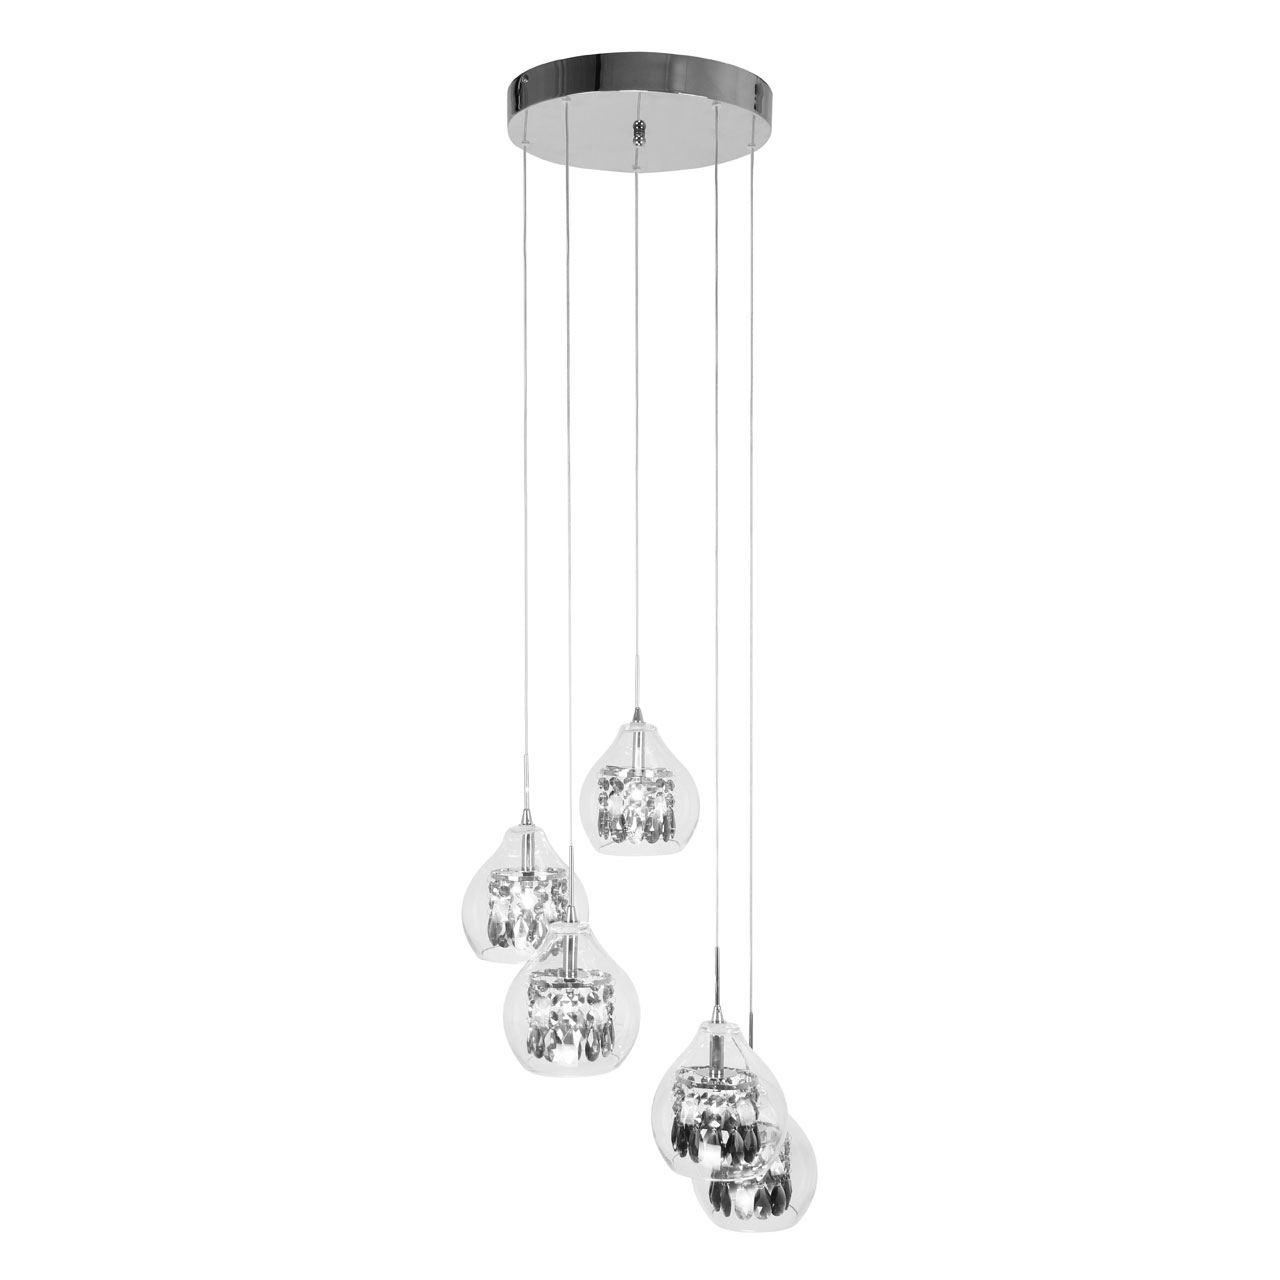 Ceiling Light 5 Pendant Light Hanging Clear Glass Detailing with Chrome Fittings